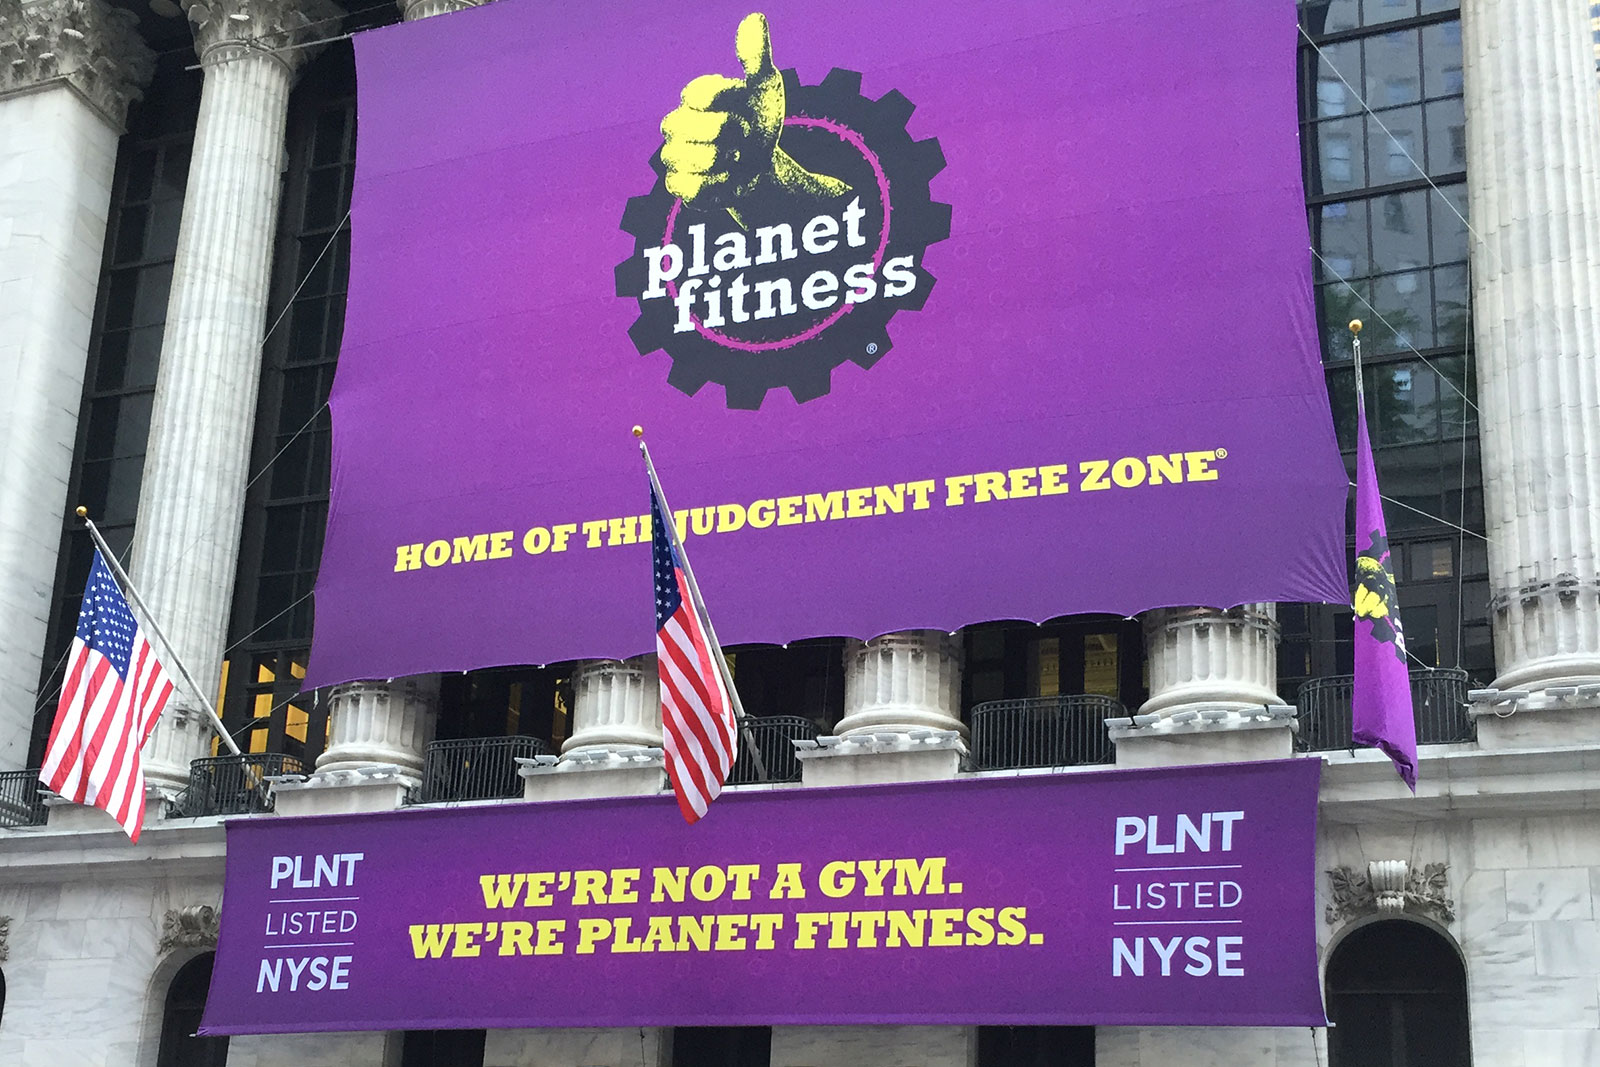 Heres why planet fitness plnt stock plunged today thestreet buycottarizona Choice Image